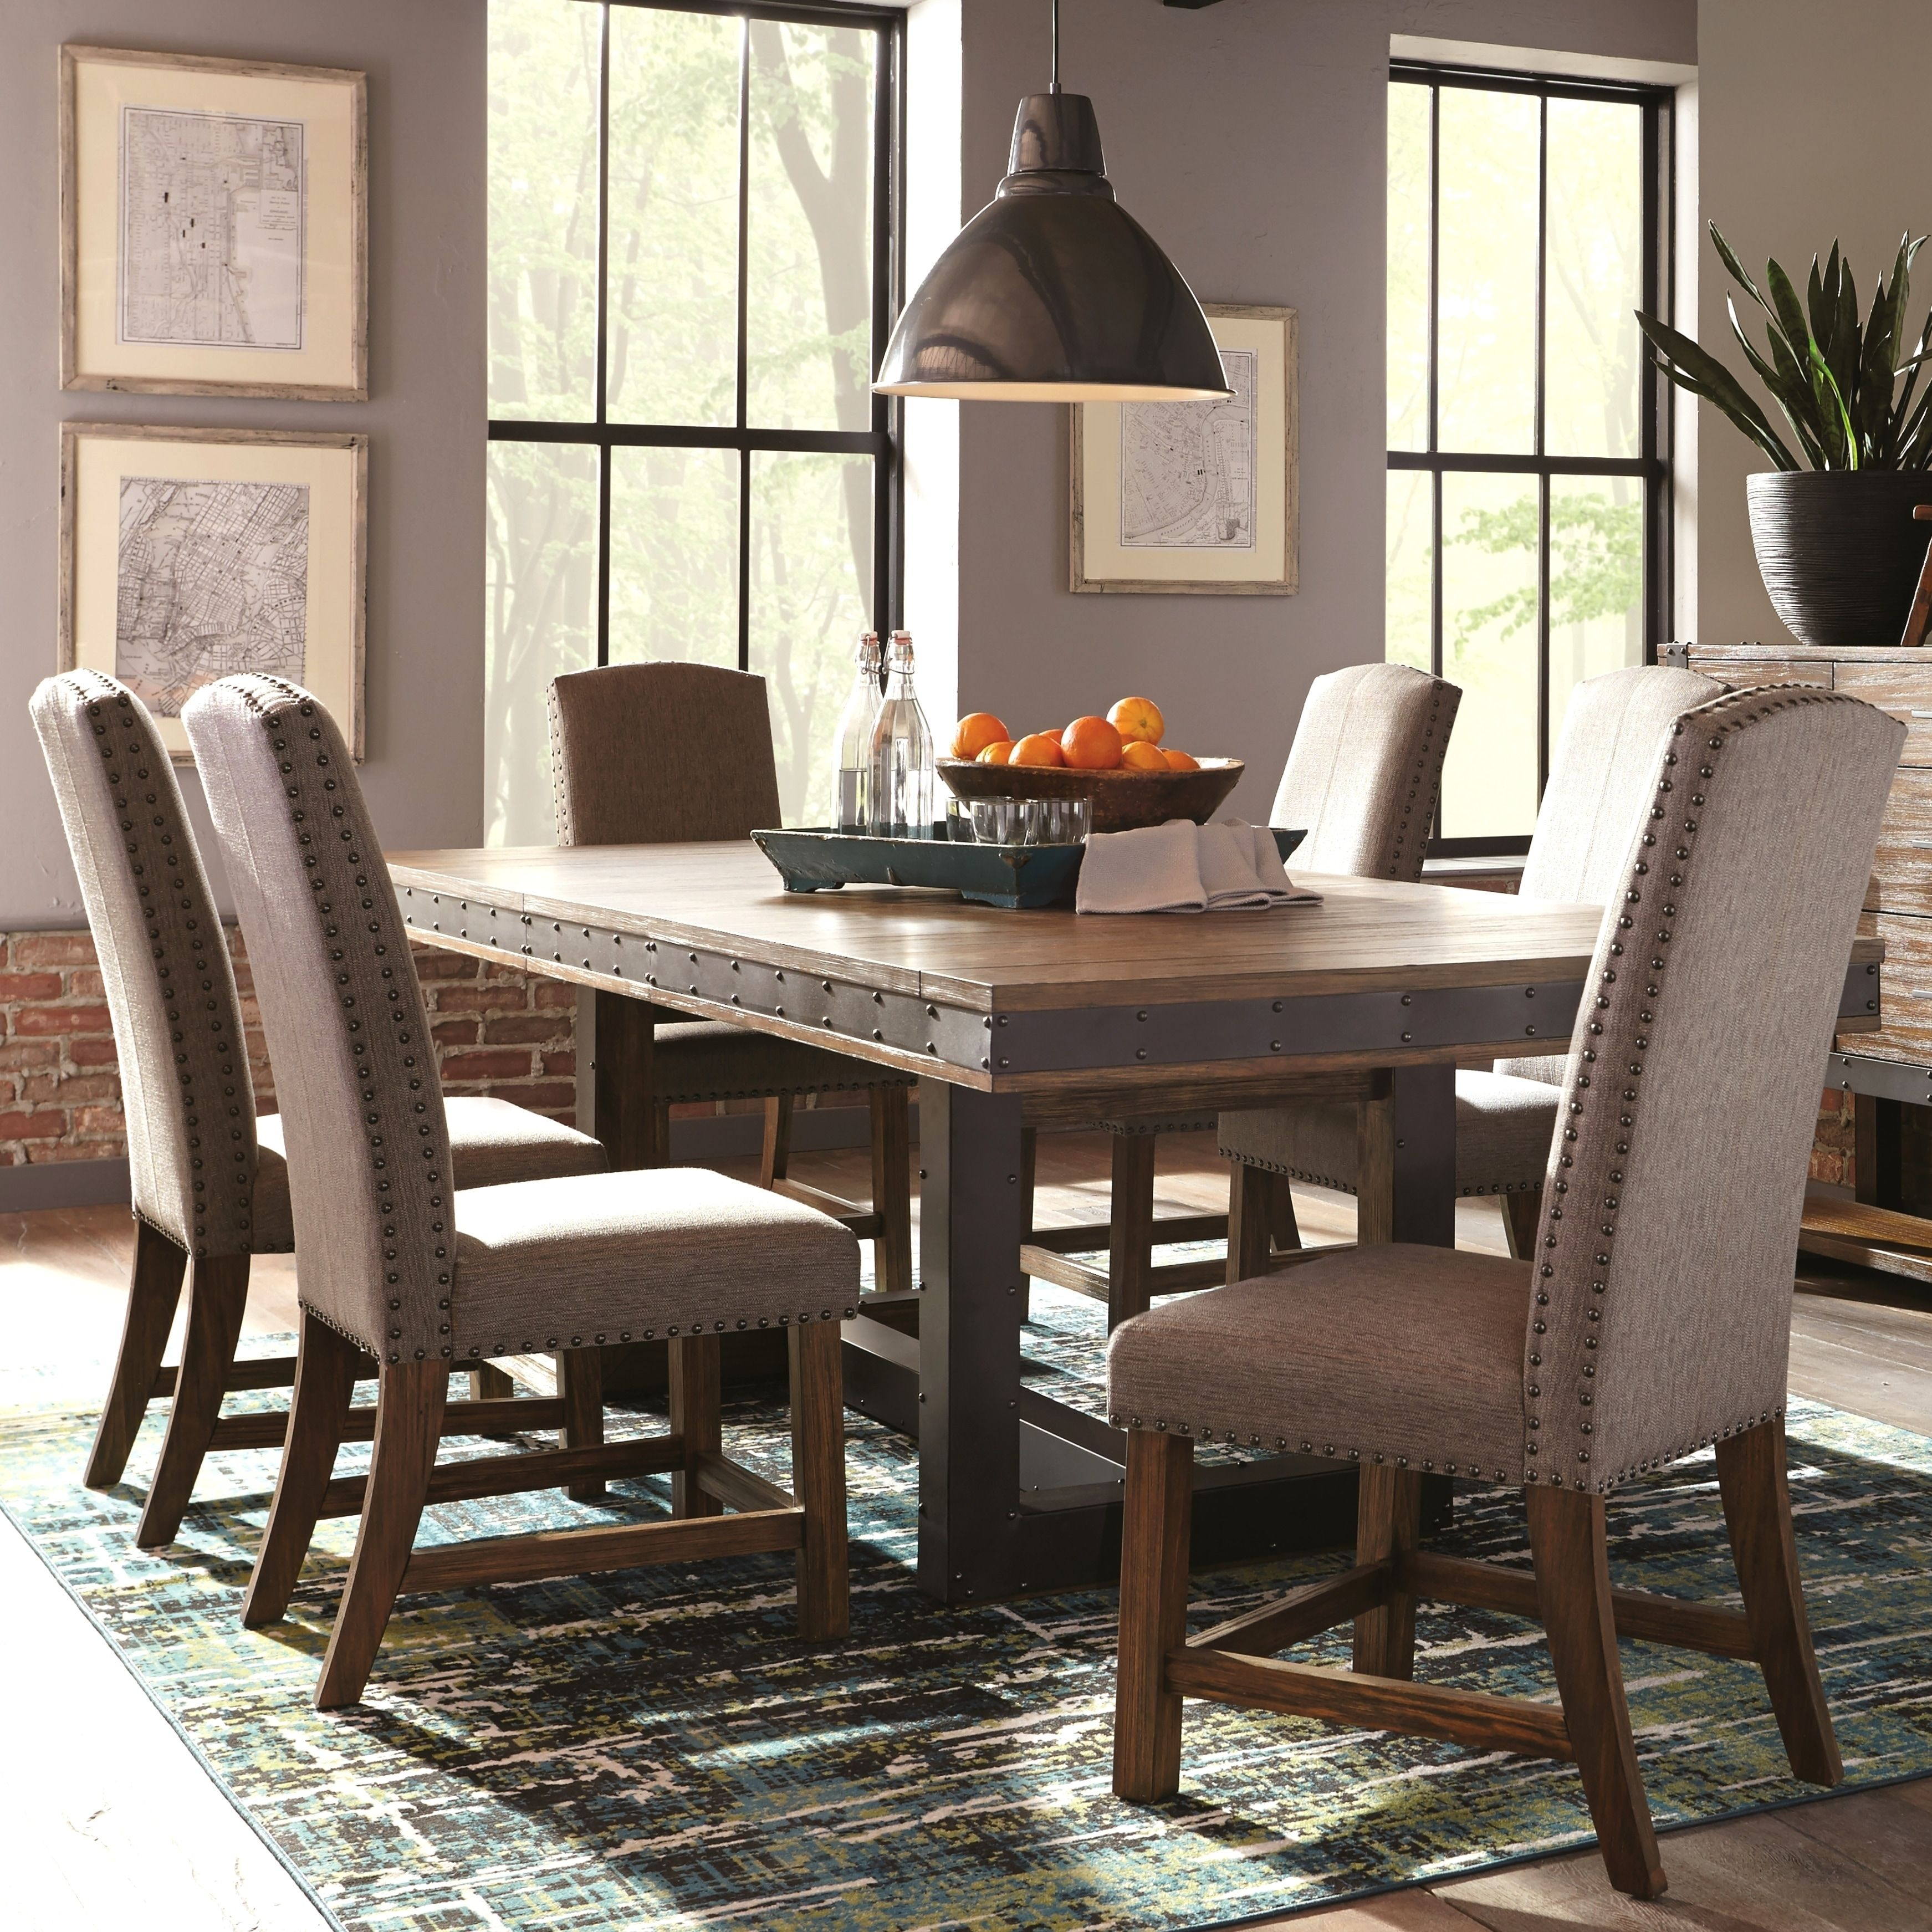 Industrial Rustic Design Metal And Wood Dining Set With Nailhead